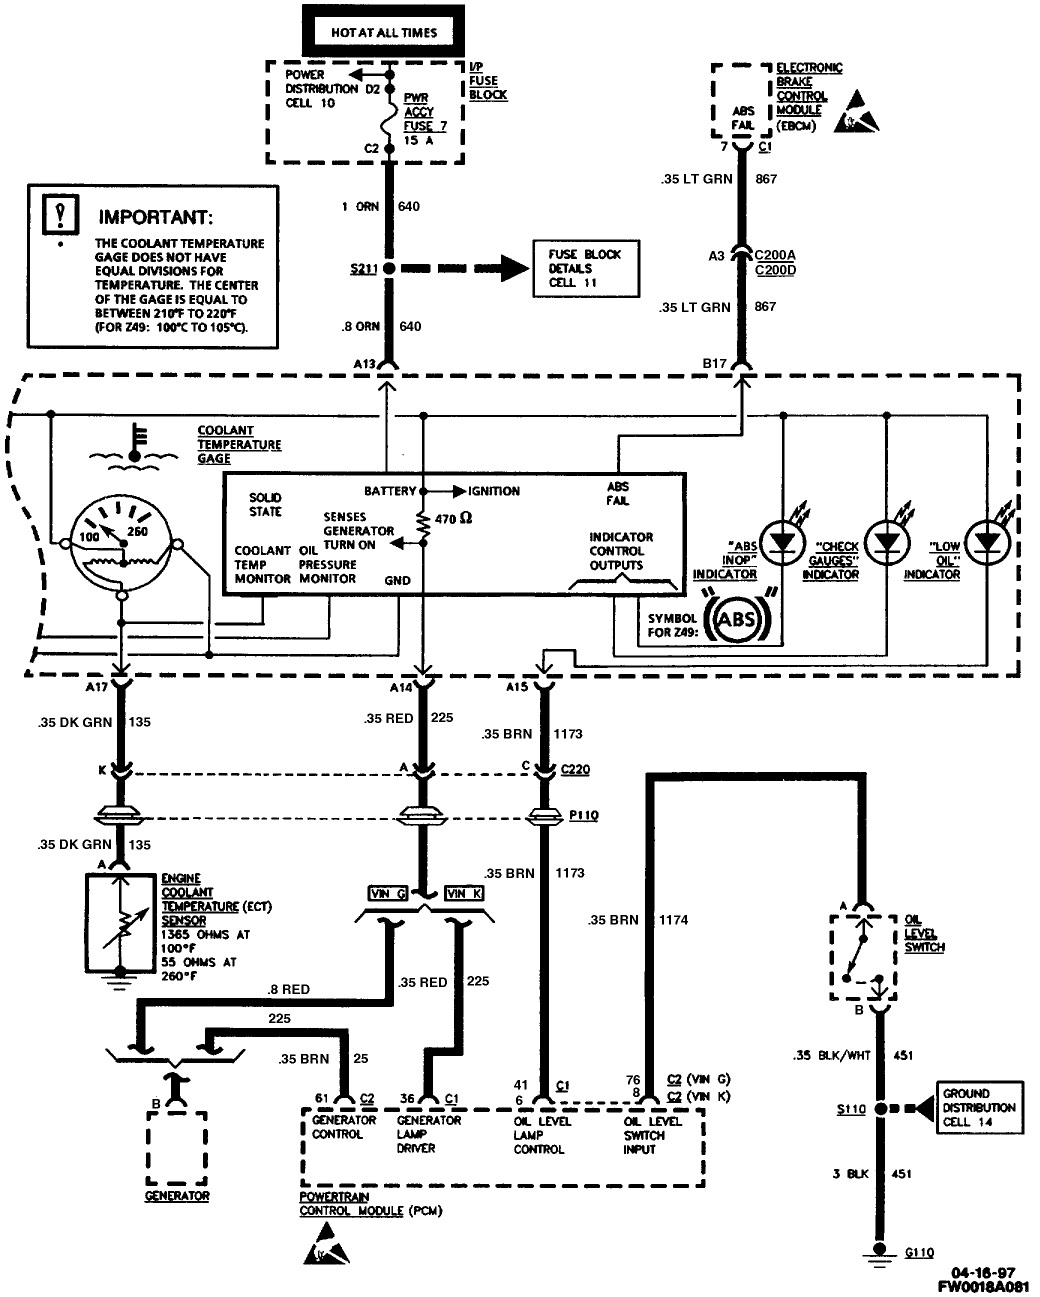 2001 Ls1 Pcm Wiring Diagram Auto Electrical For 1987 Related With